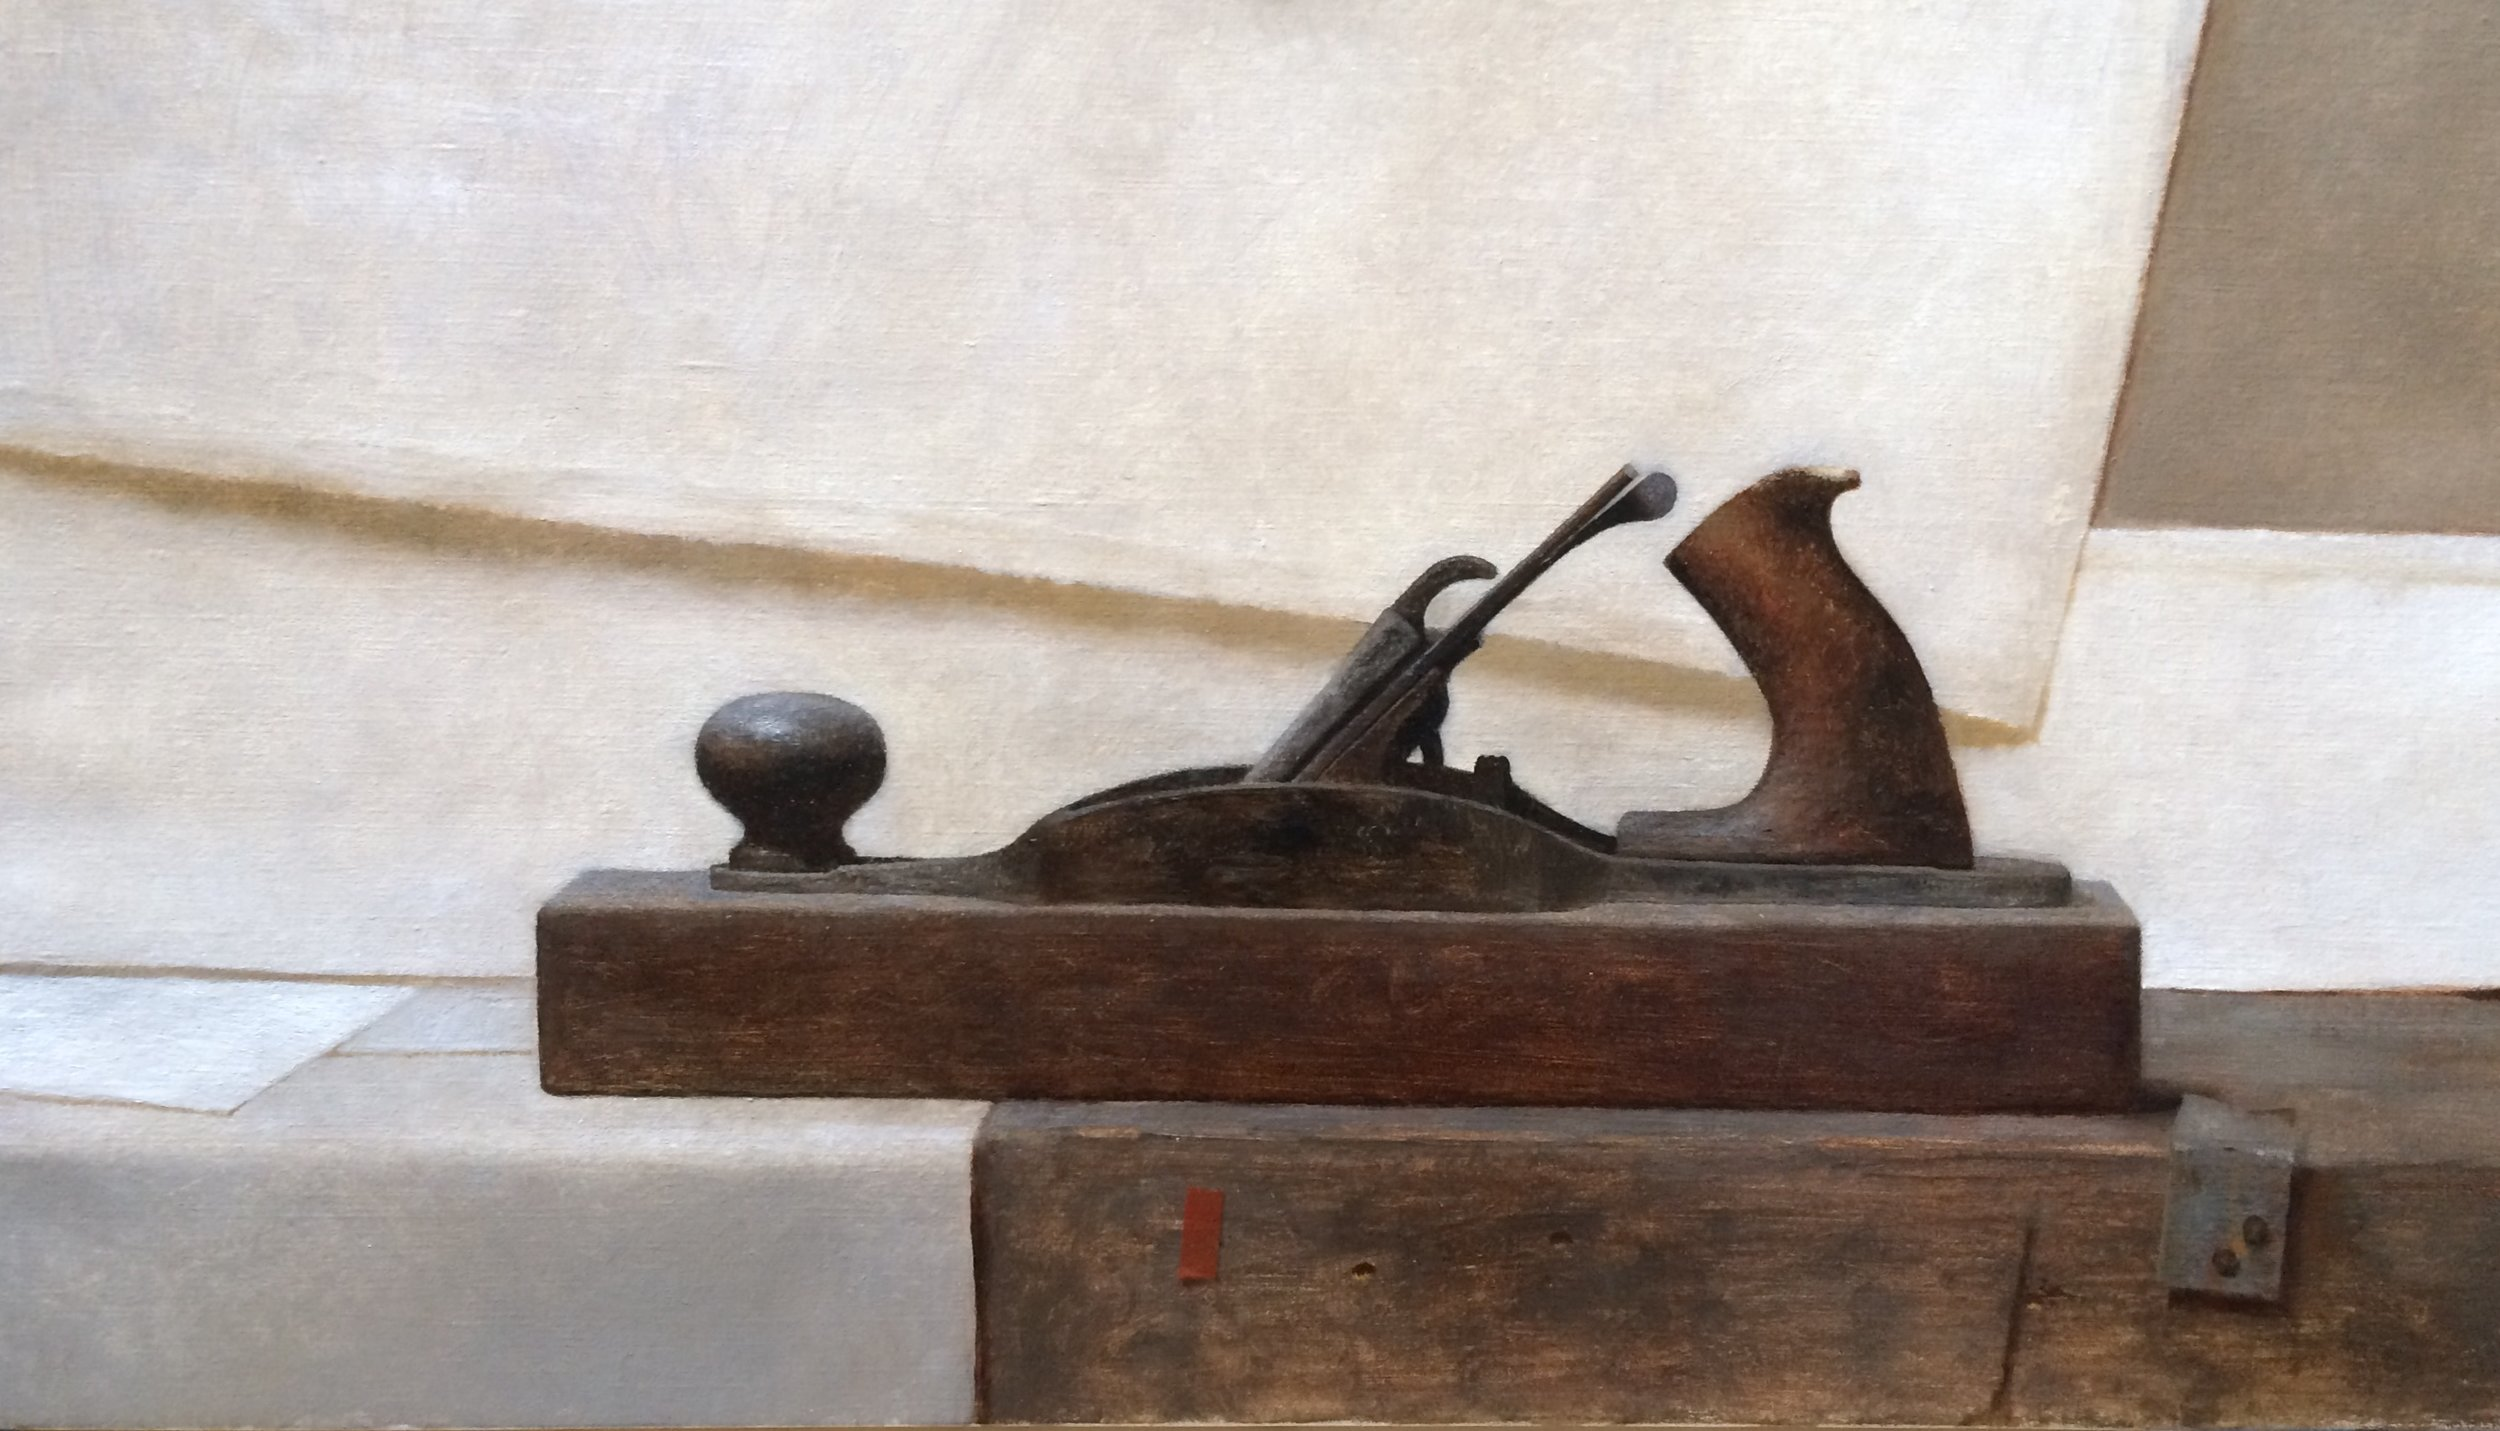 Block Plane  by Dale Zinkowski, 2018, oil on linen, 14 x 24 in, $2,500